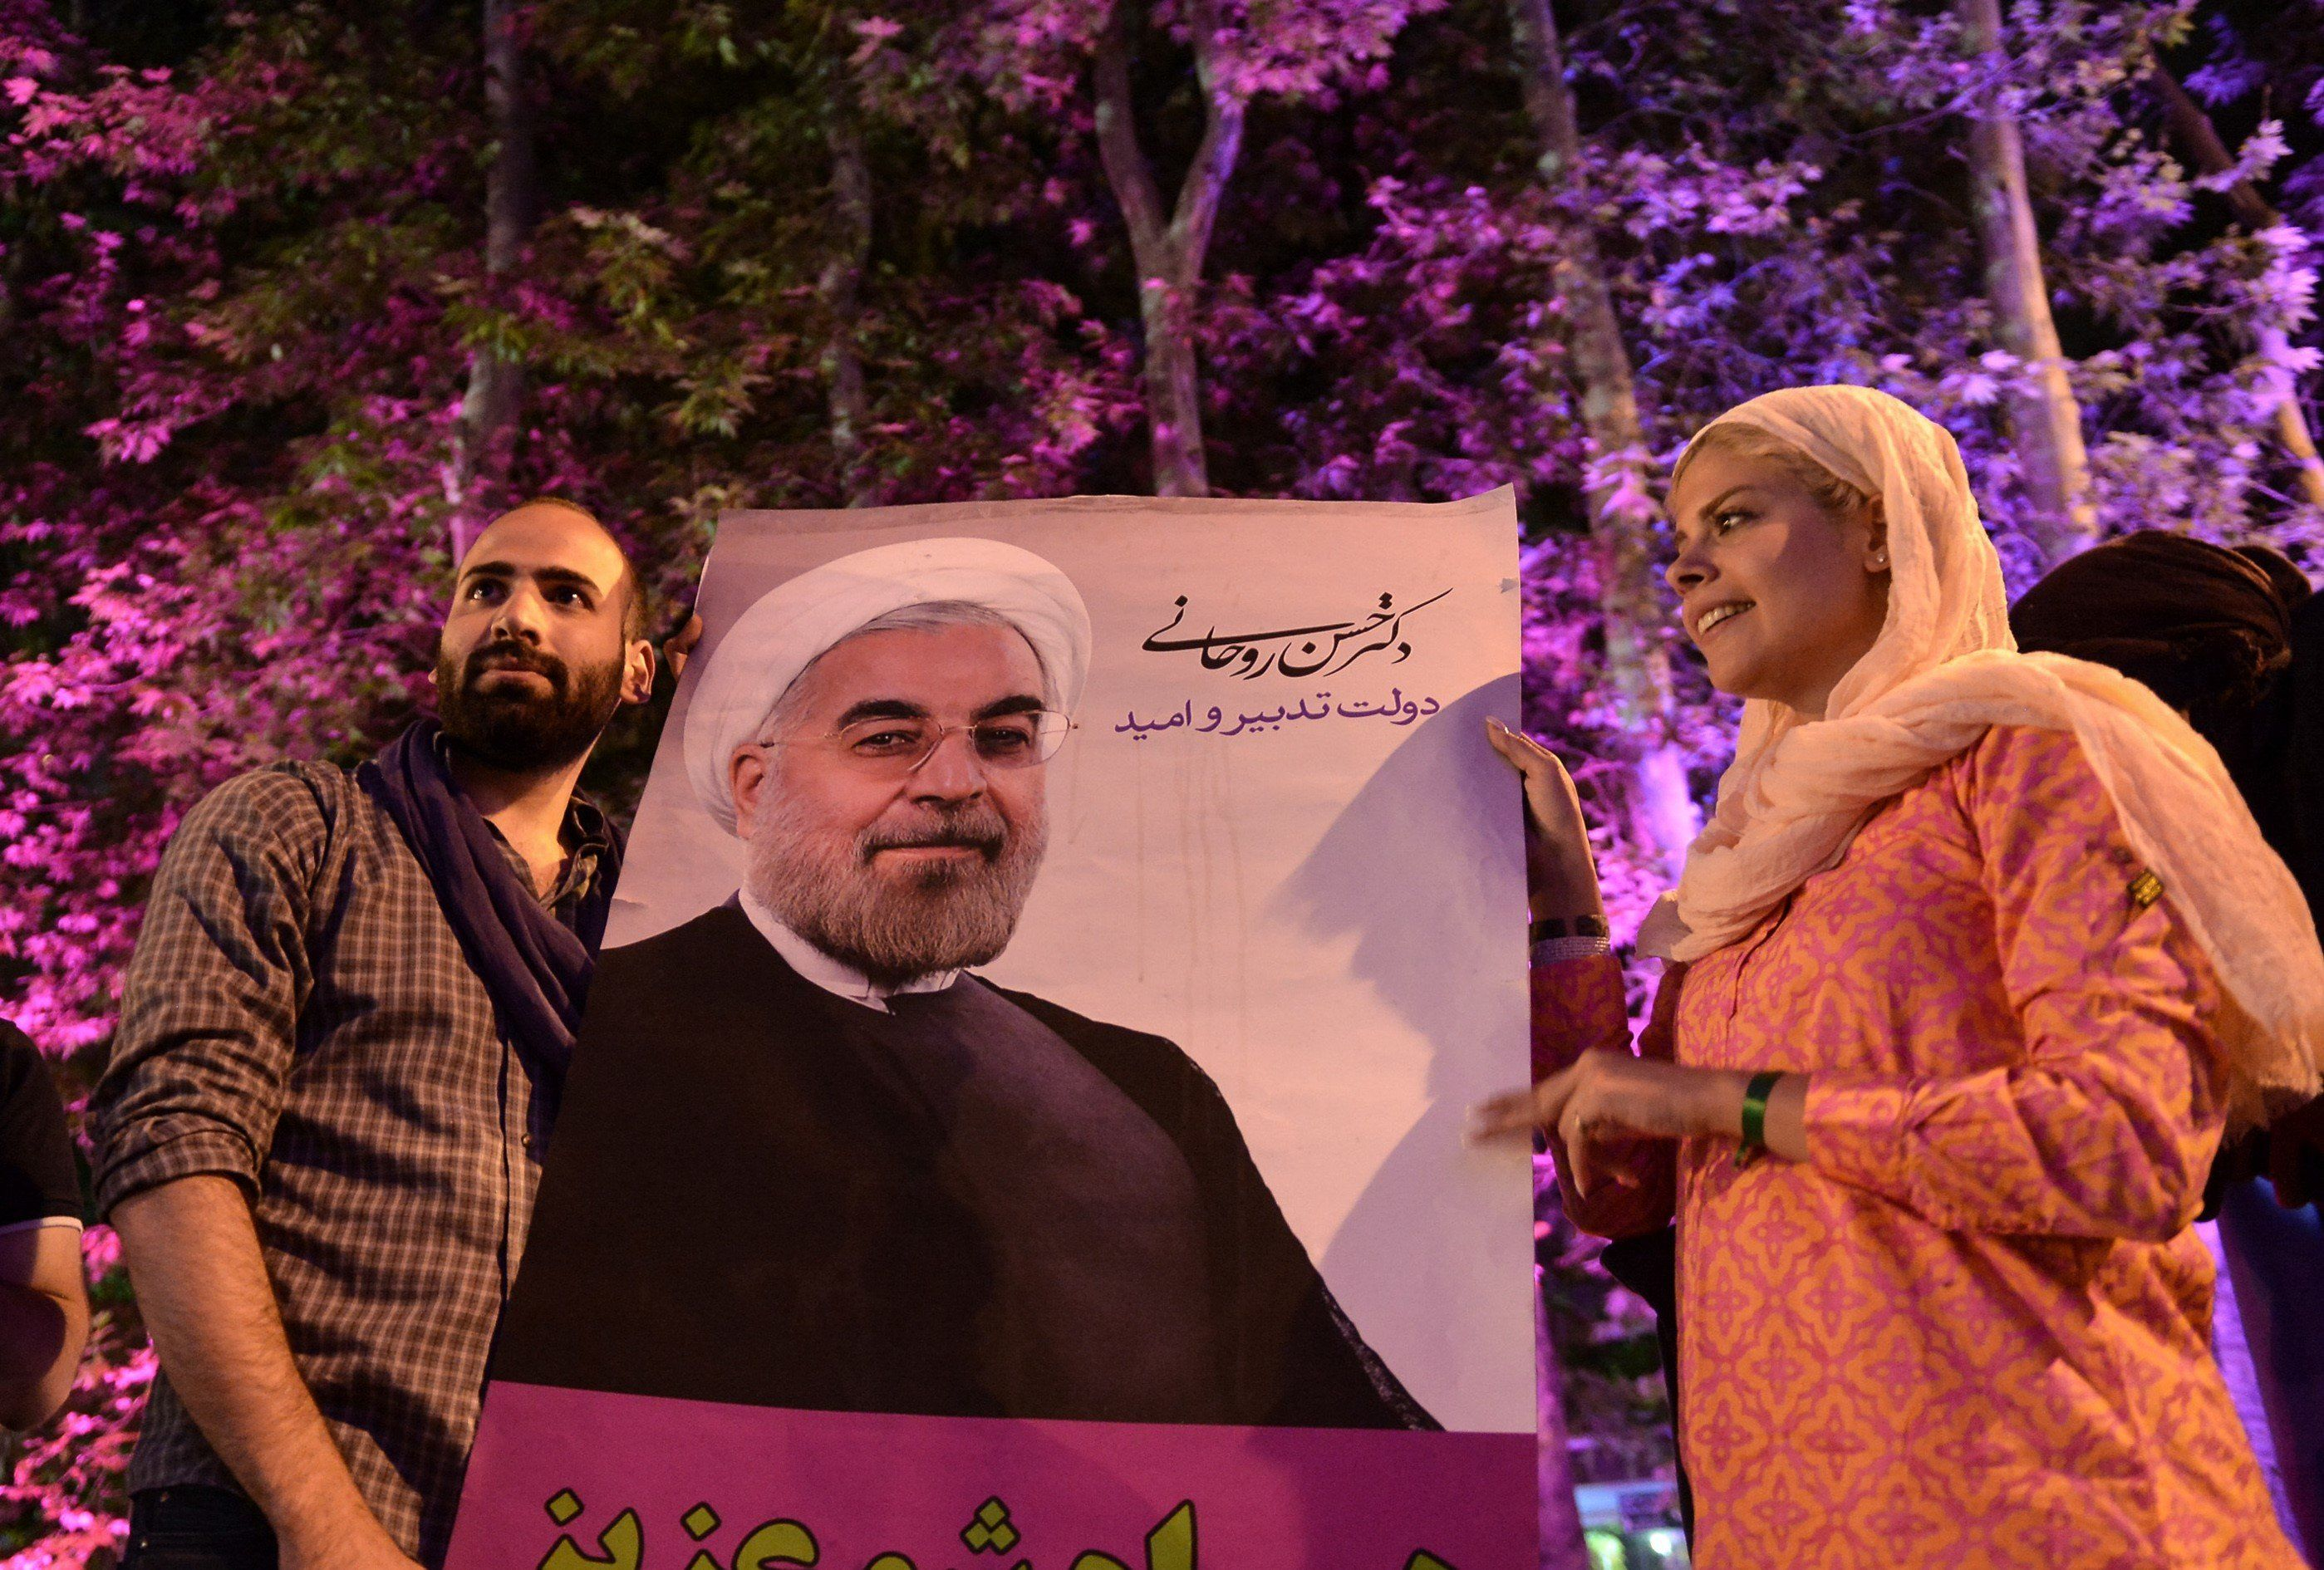 Supporters of Rouhani celebrate after the results of the Iran vote were announced. Tehran, Iran. May 20.